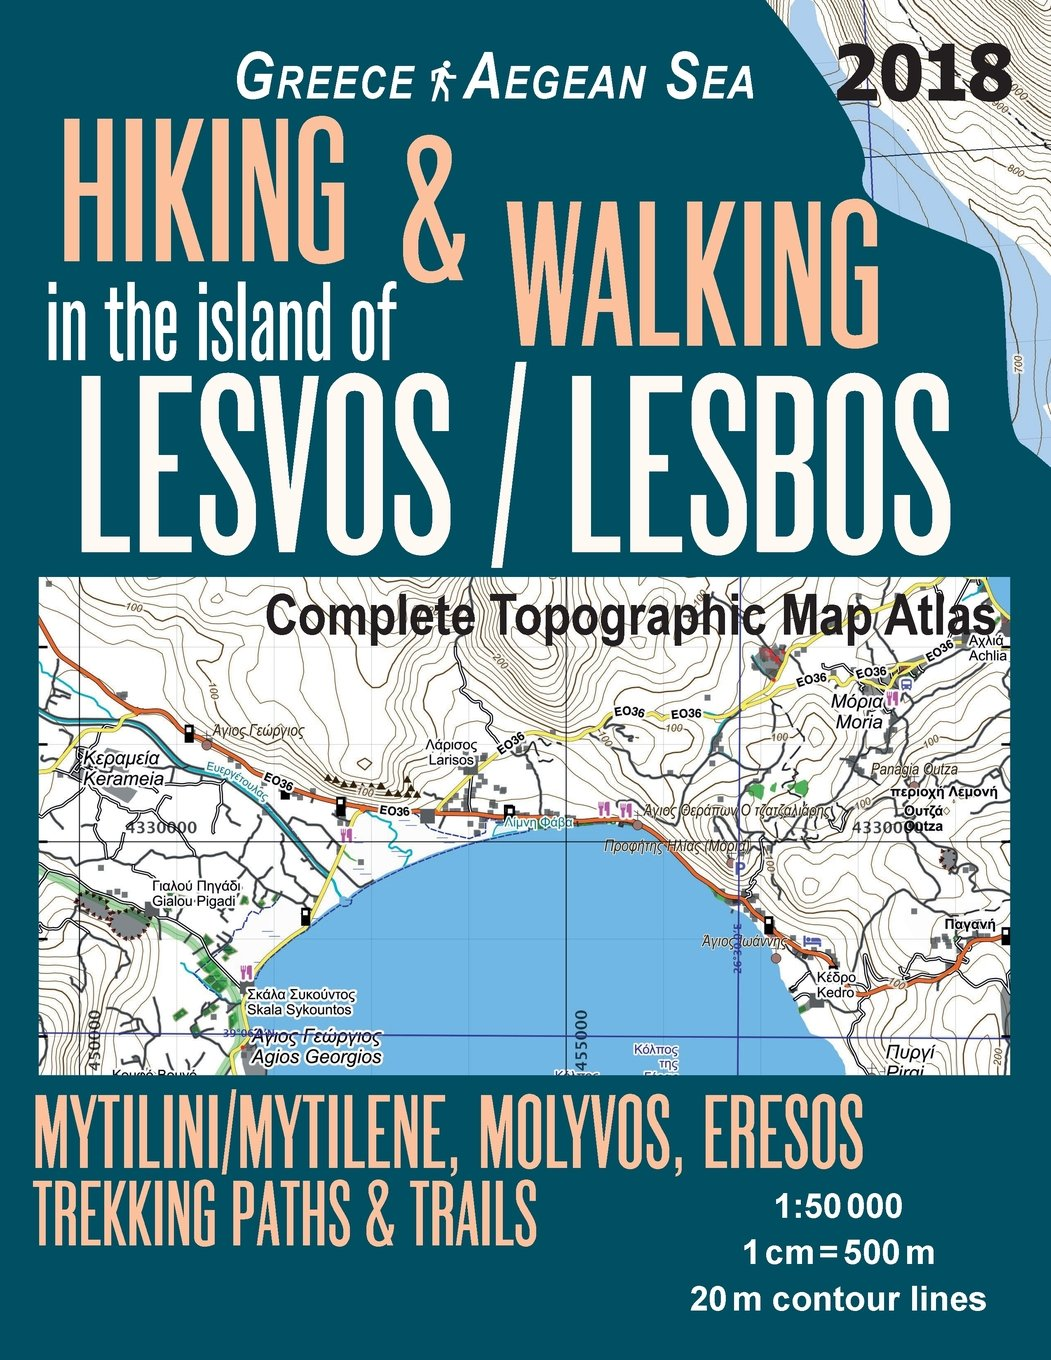 Hiking Walking In The Island Of Lesvos Lesbos Complete Topographic